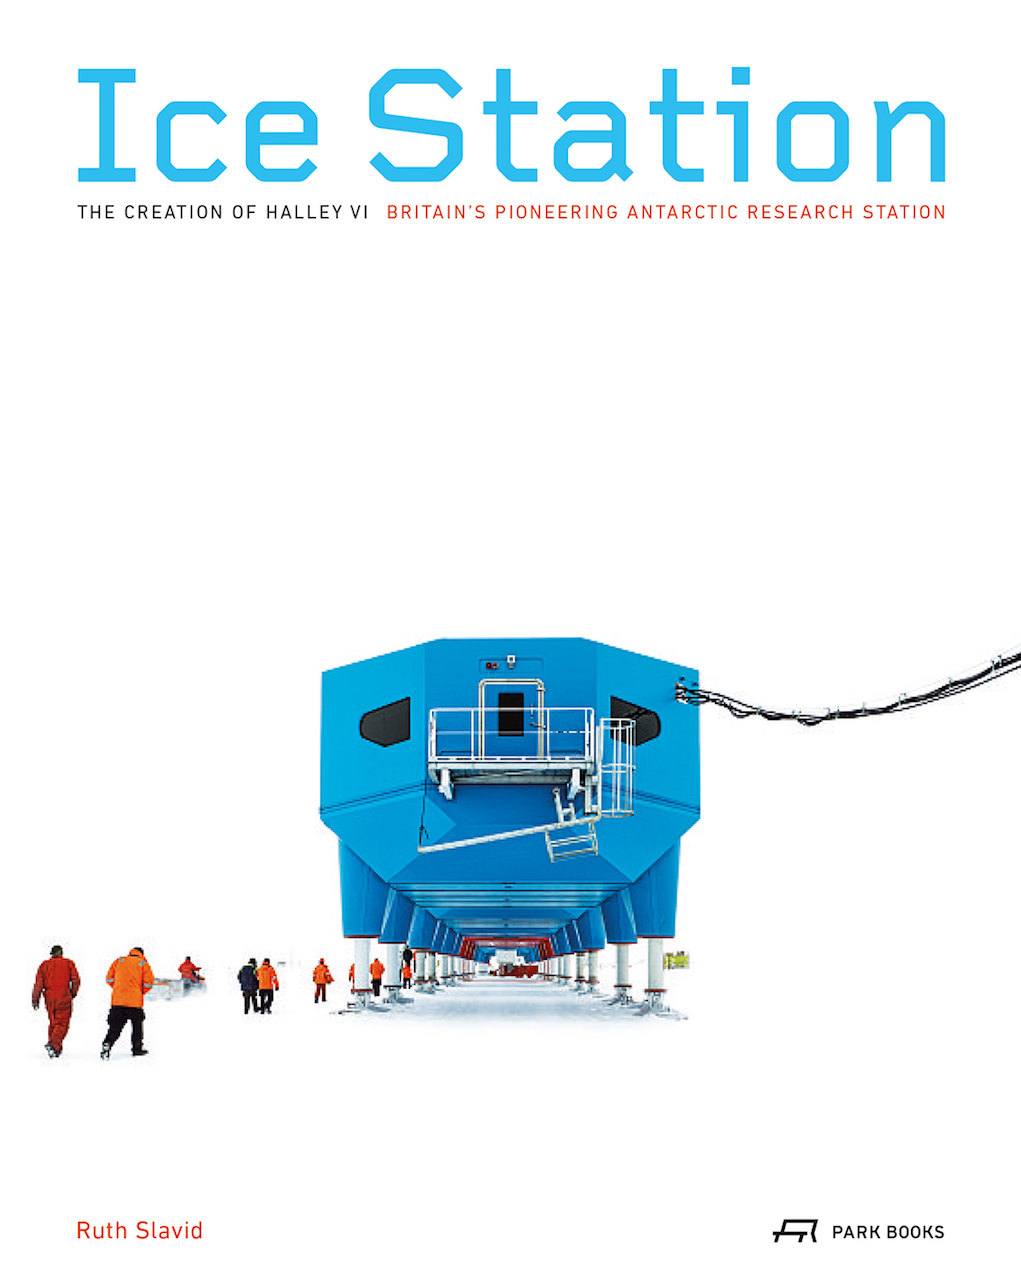 Cover of 'Ice Station' (courtesy Park Books)